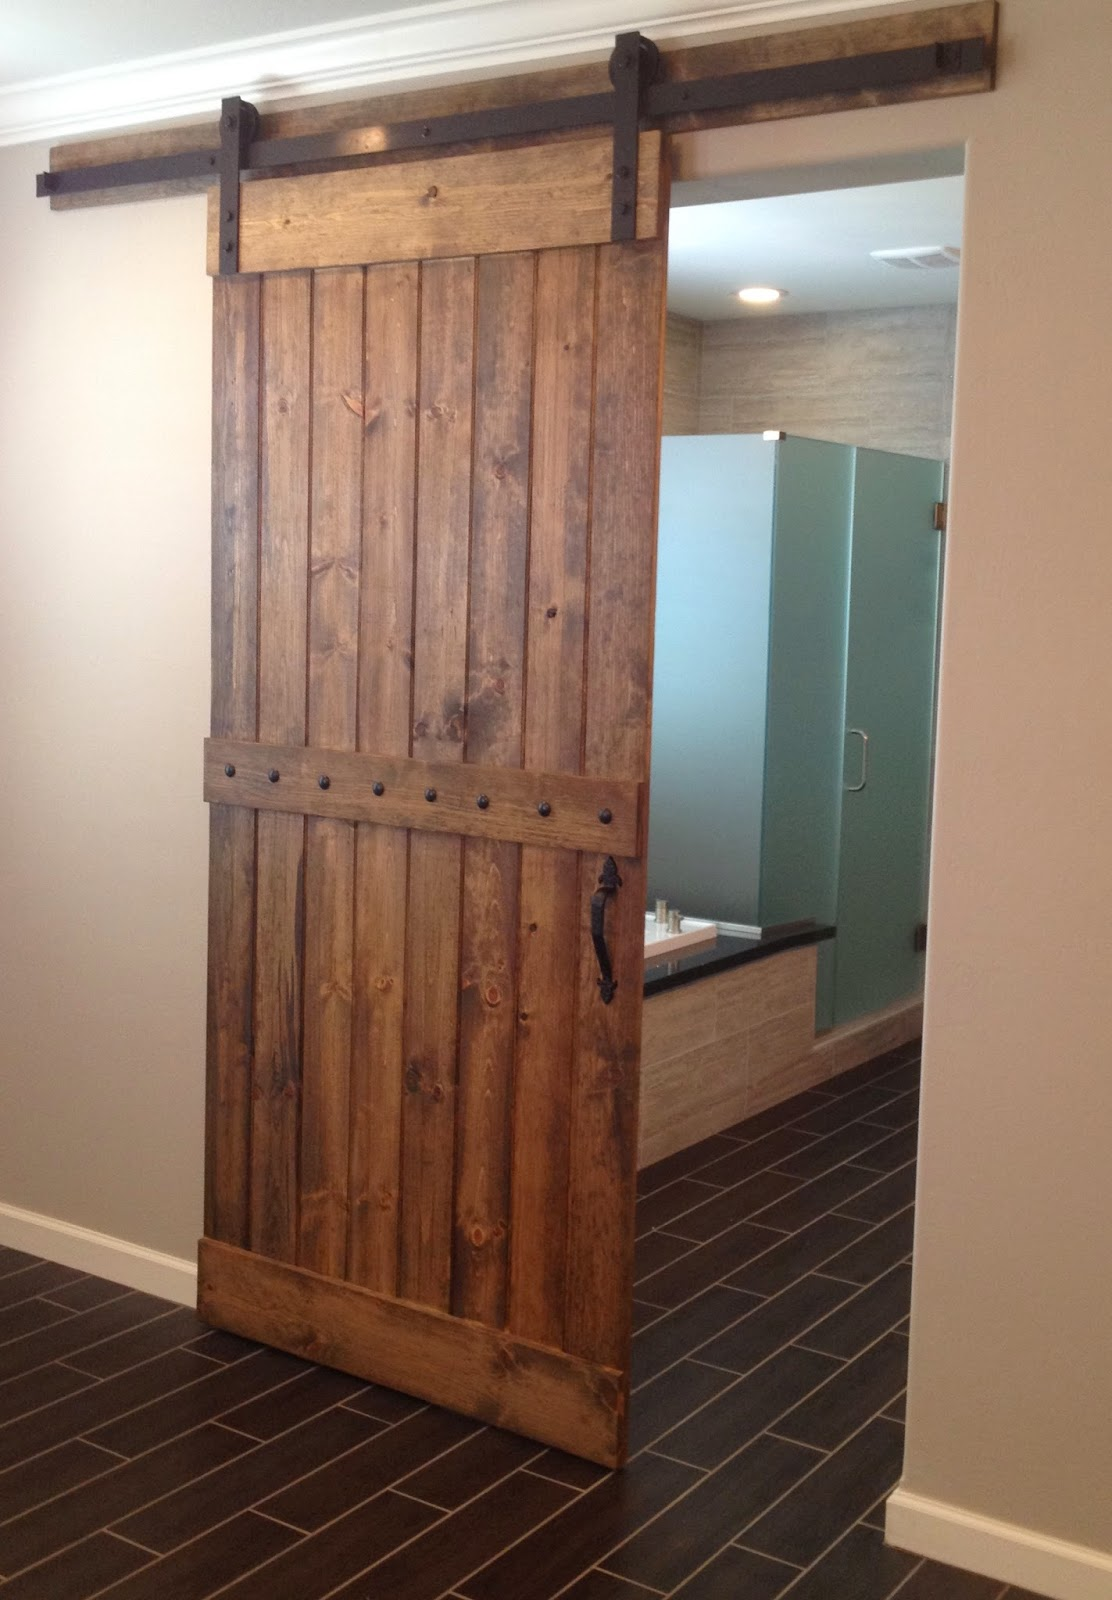 Sliding Barn Door Designs: ARIZONA BARN DOORS: A Sampling Of Our Barn Doors